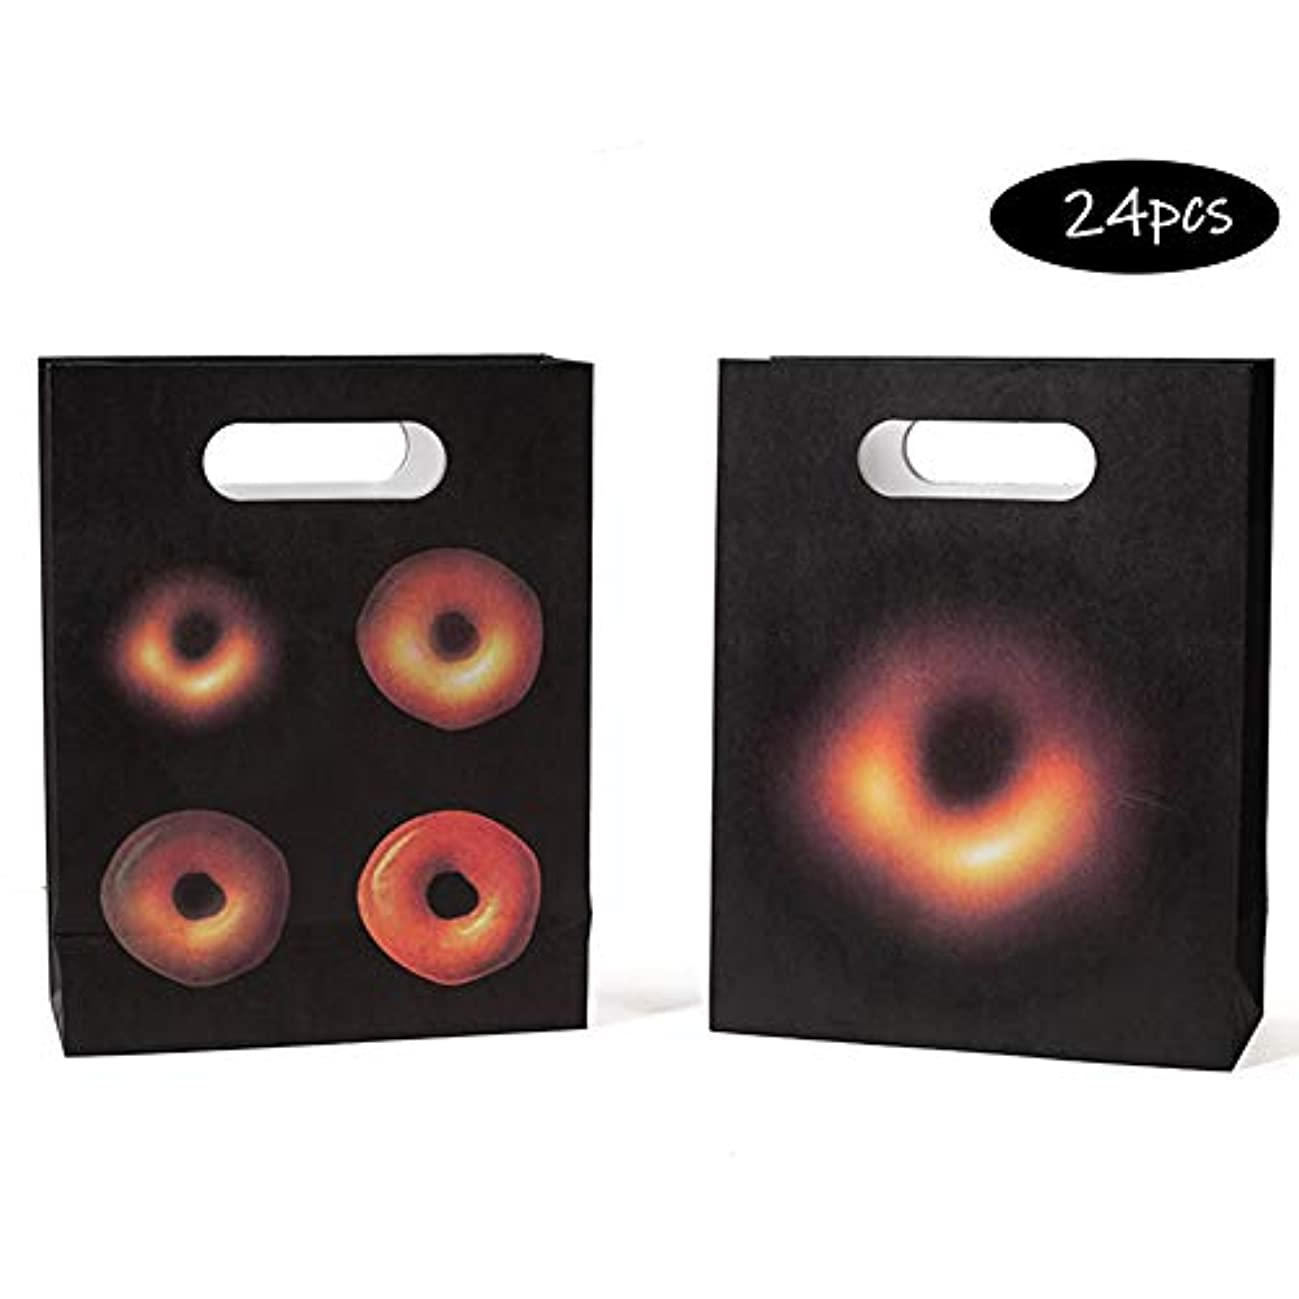 Space Party Supplies - 24 Outer Space Party Favor Bags, Black Hole Goody Bags, Loot Bags, Great for Kids Birthday Parties